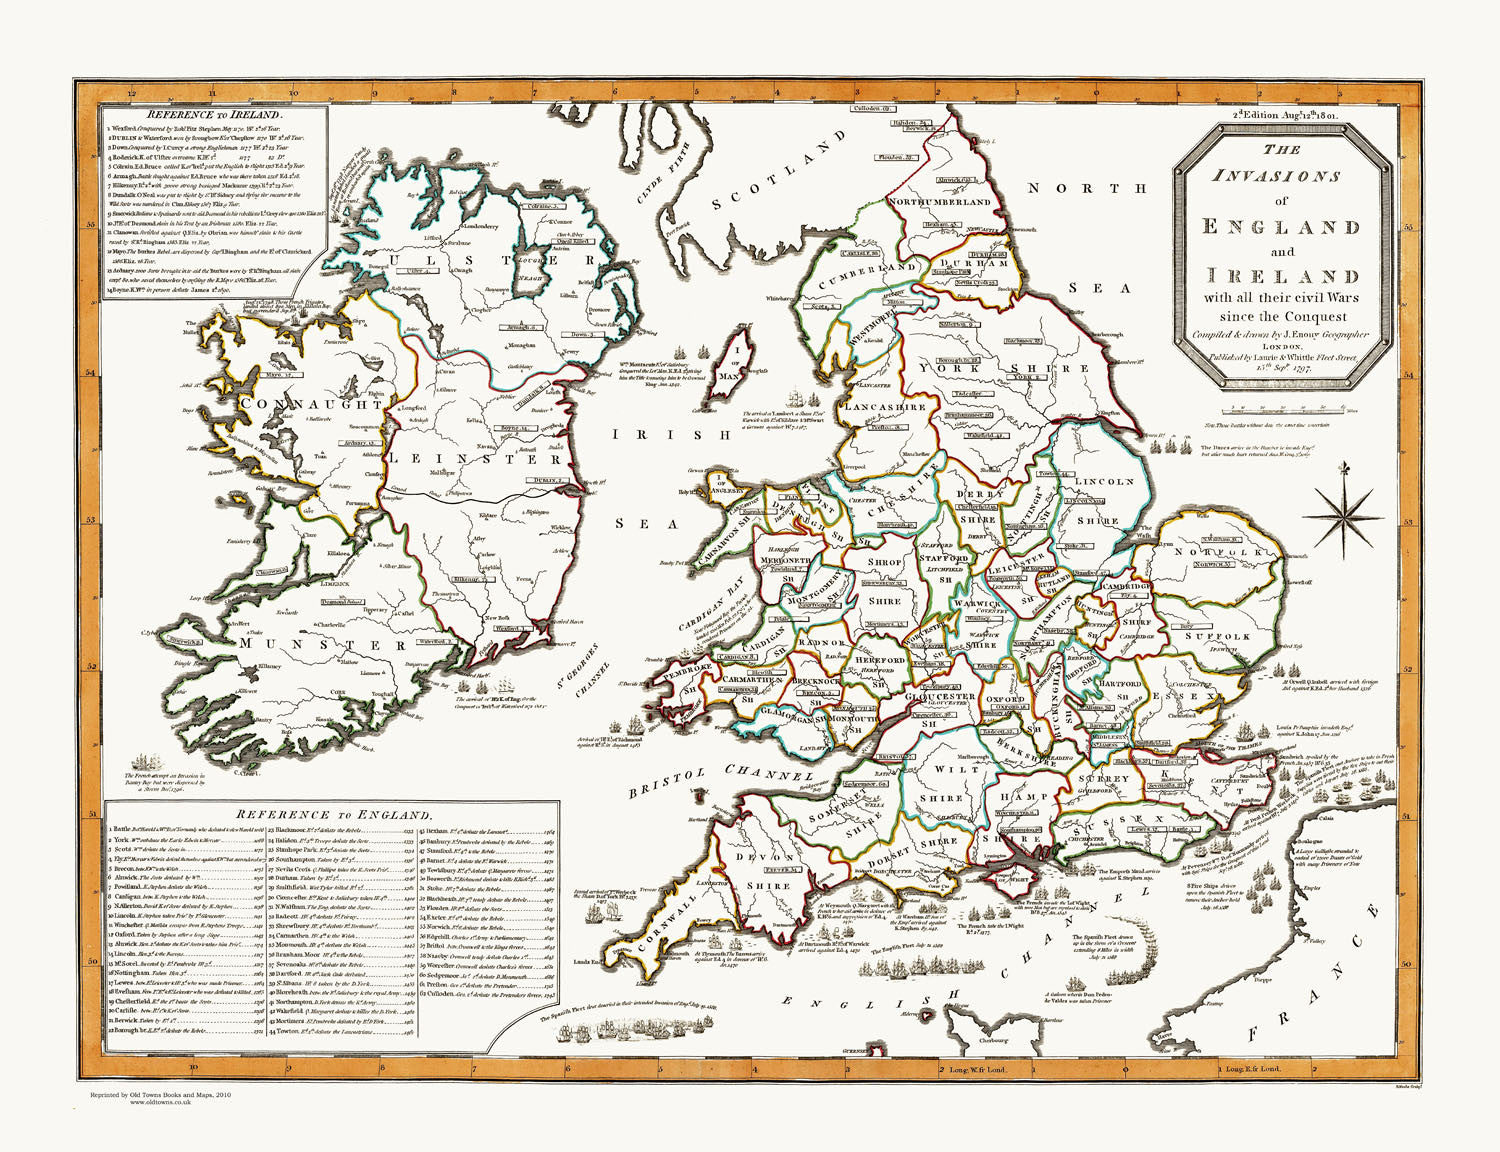 Map Of England And Ireland With Towns.The Invasions Of England Ireland With All Their Civil Wars Since The Conquest 1801